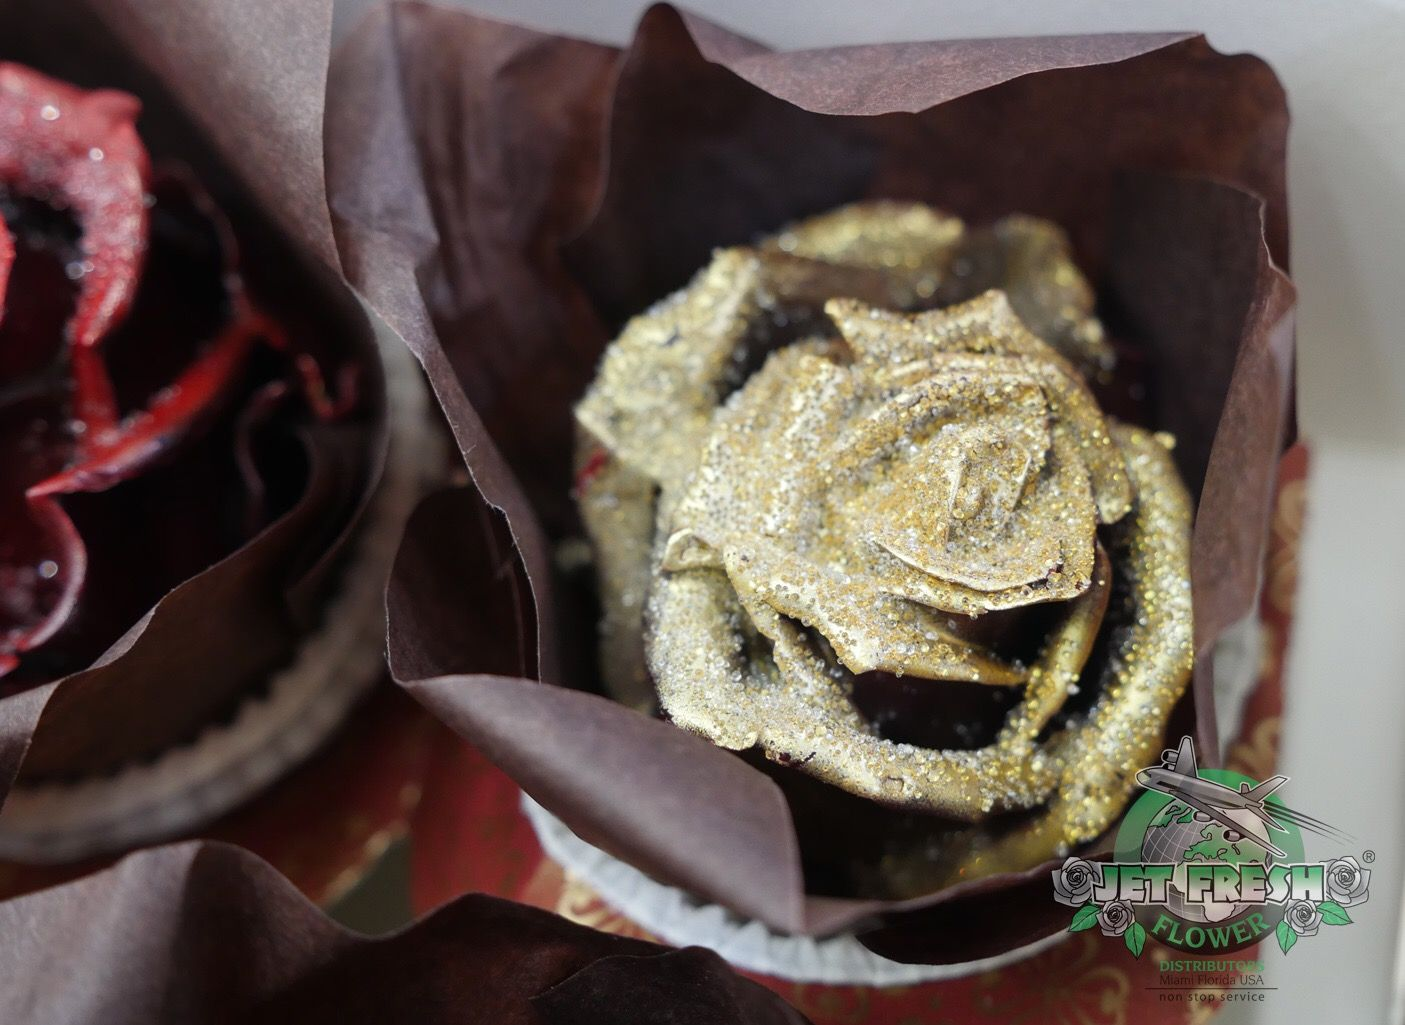 Gold Glitter Cupcake Roses - they are not edible, but they make great  party favors for your next event. Now available at Jet Fresh Flowers.